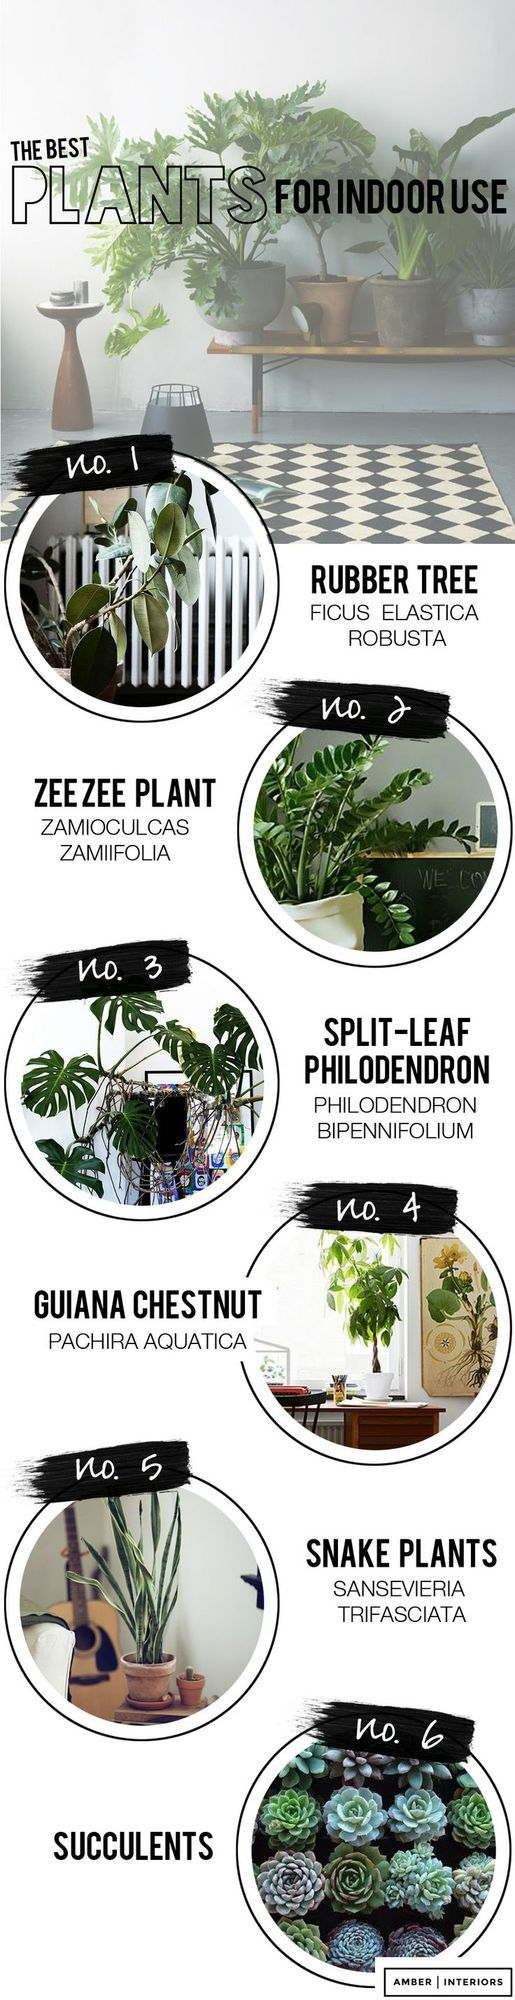 I have been asked a couple (read tons) of times what my fave indoor plants to use are. This is tricky because I love greenery in a room but have a big fat black thumb and have been responsible for sen